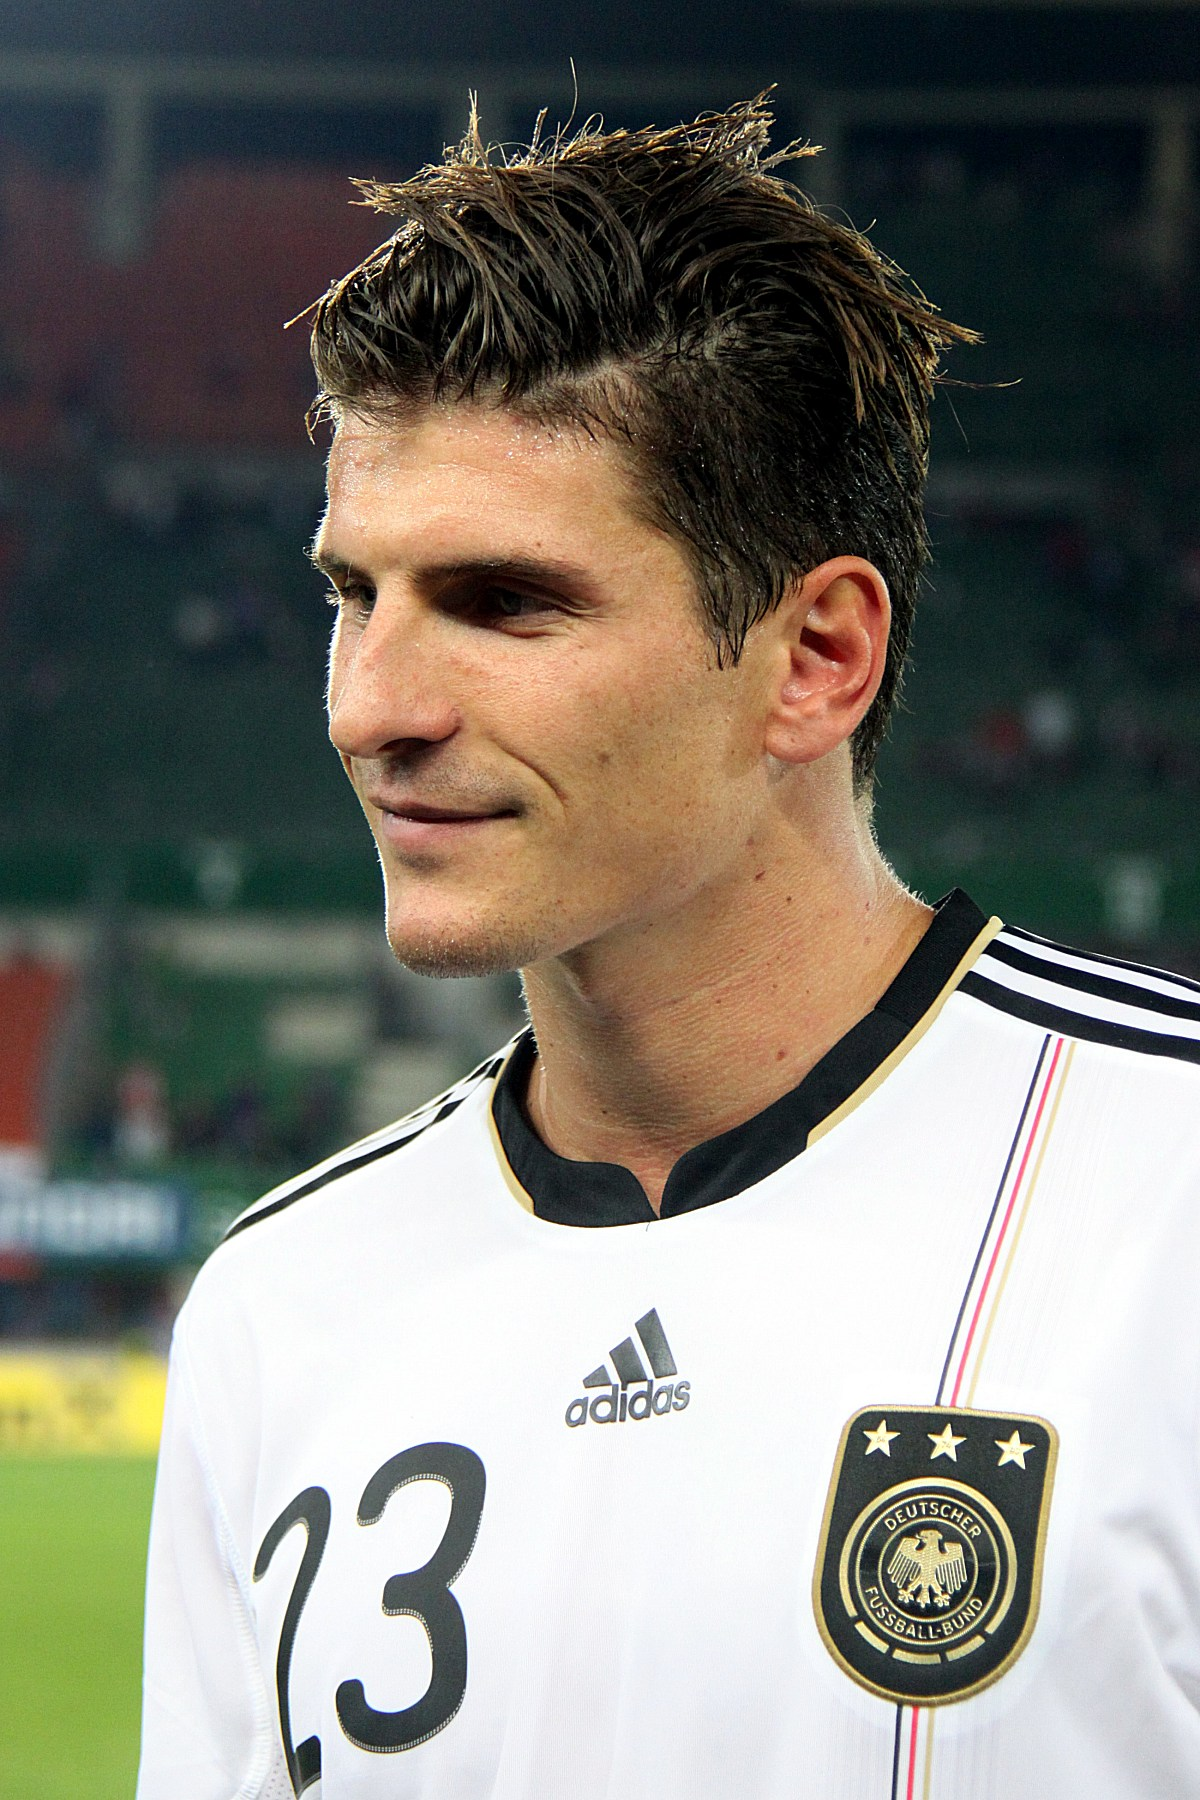 Mario Gomez returned to the Bundess team